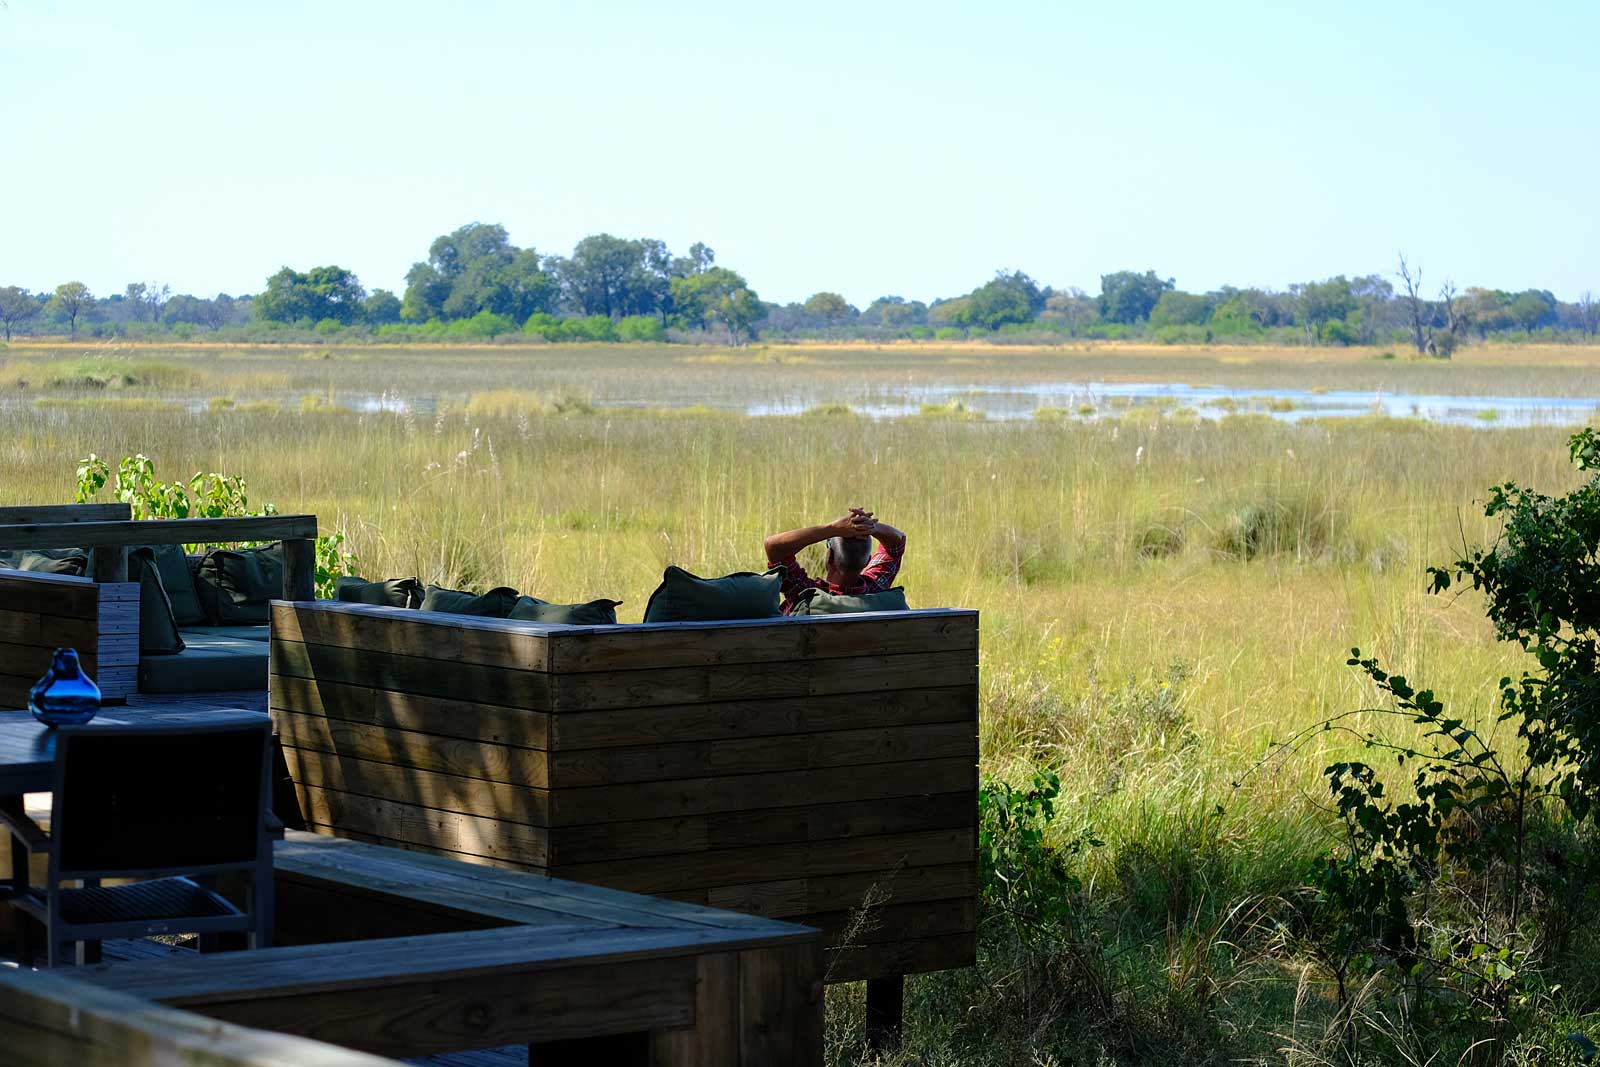 Vumpura Camp in the Okavango Delta